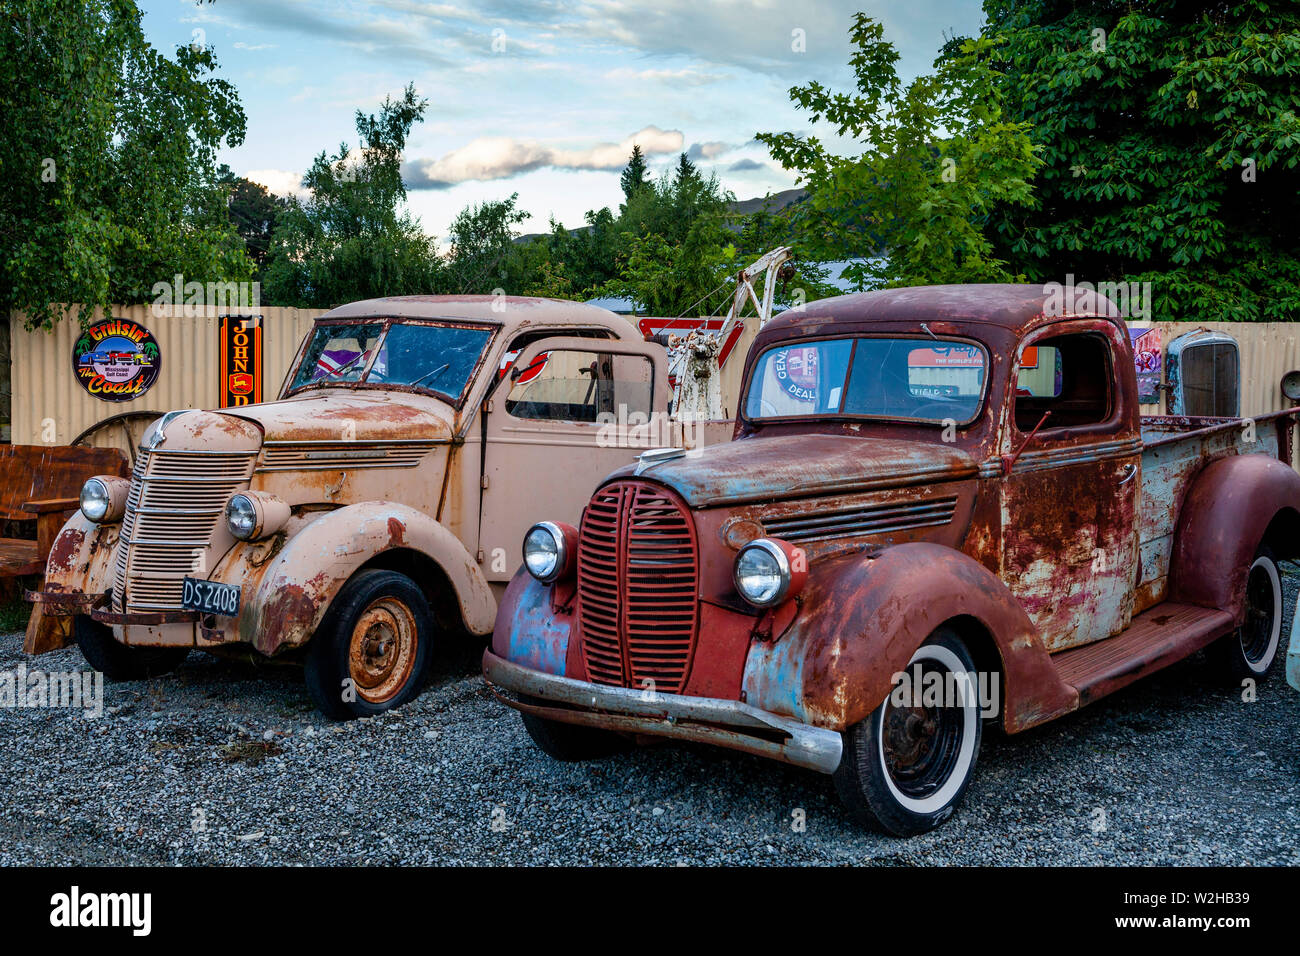 Old Fashion Cars >> Rusting Old Fashioned Cars At The Three Creeks Shopping Area